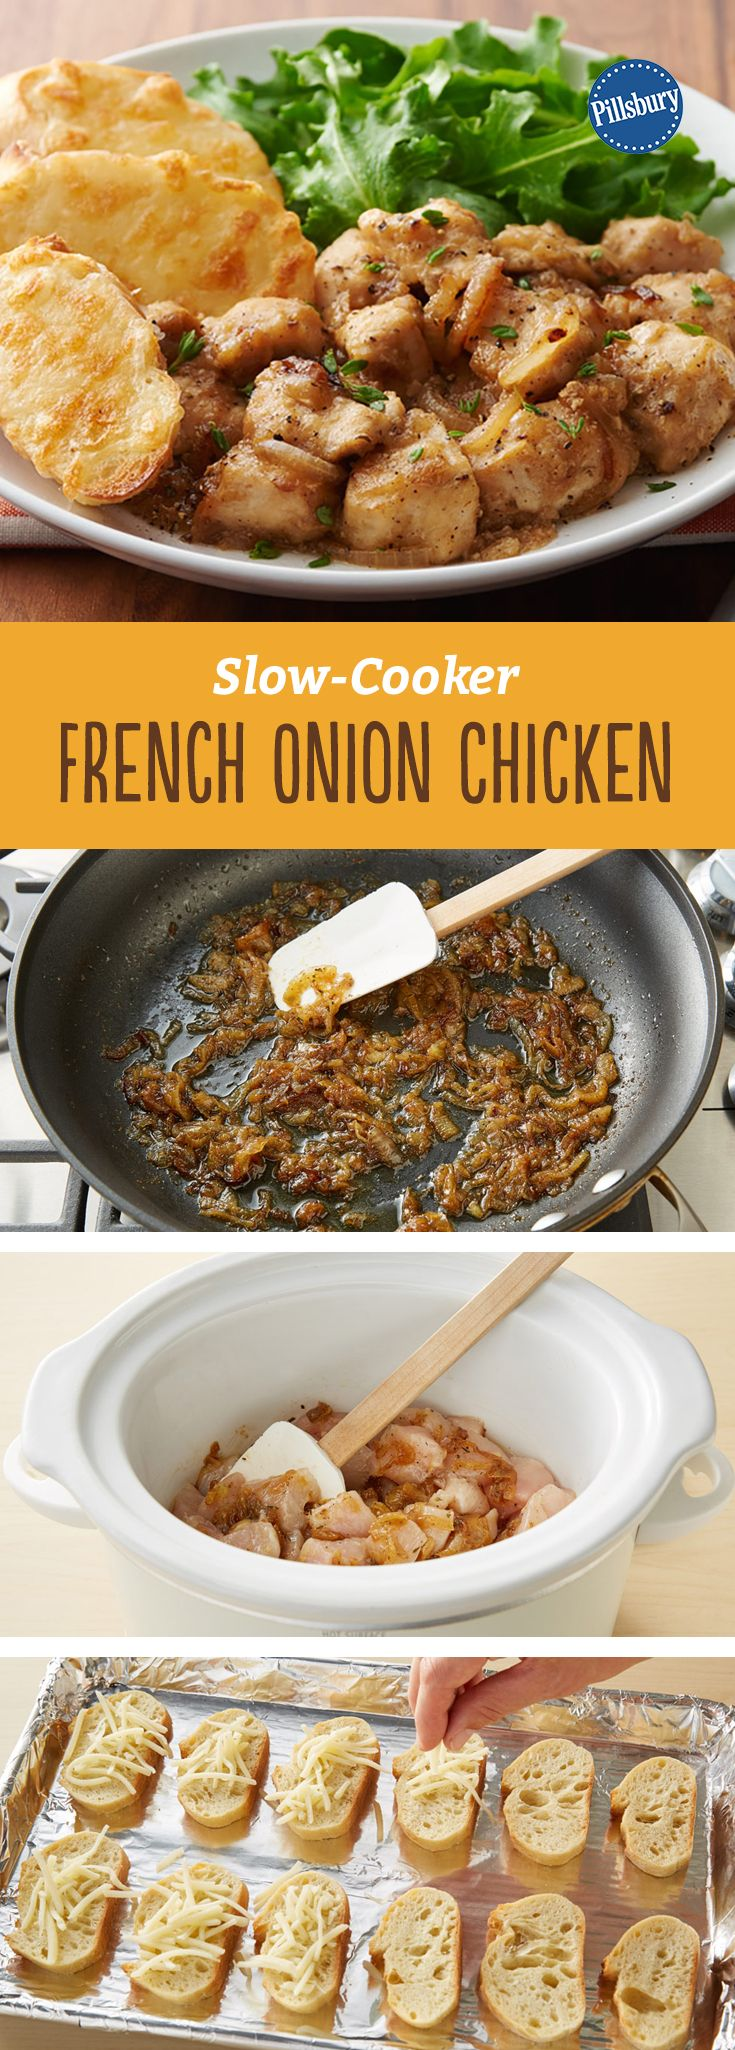 Slow-Cooker French Onion Chicken: Love French onion soup? So do we. Which is why this slow-cooker chicken dinner recipe is one of our new favorites!